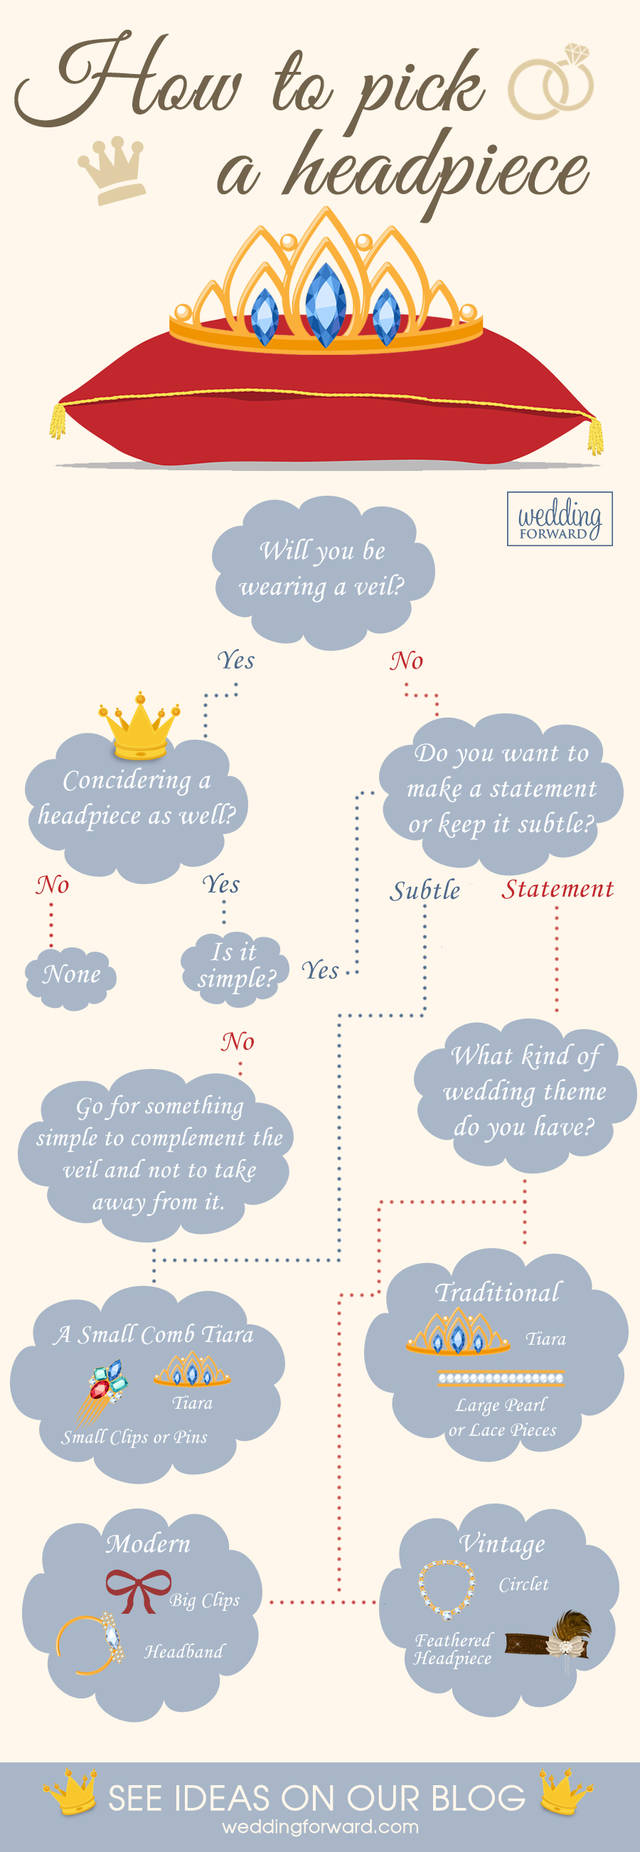 How to pick a wedding headpiece